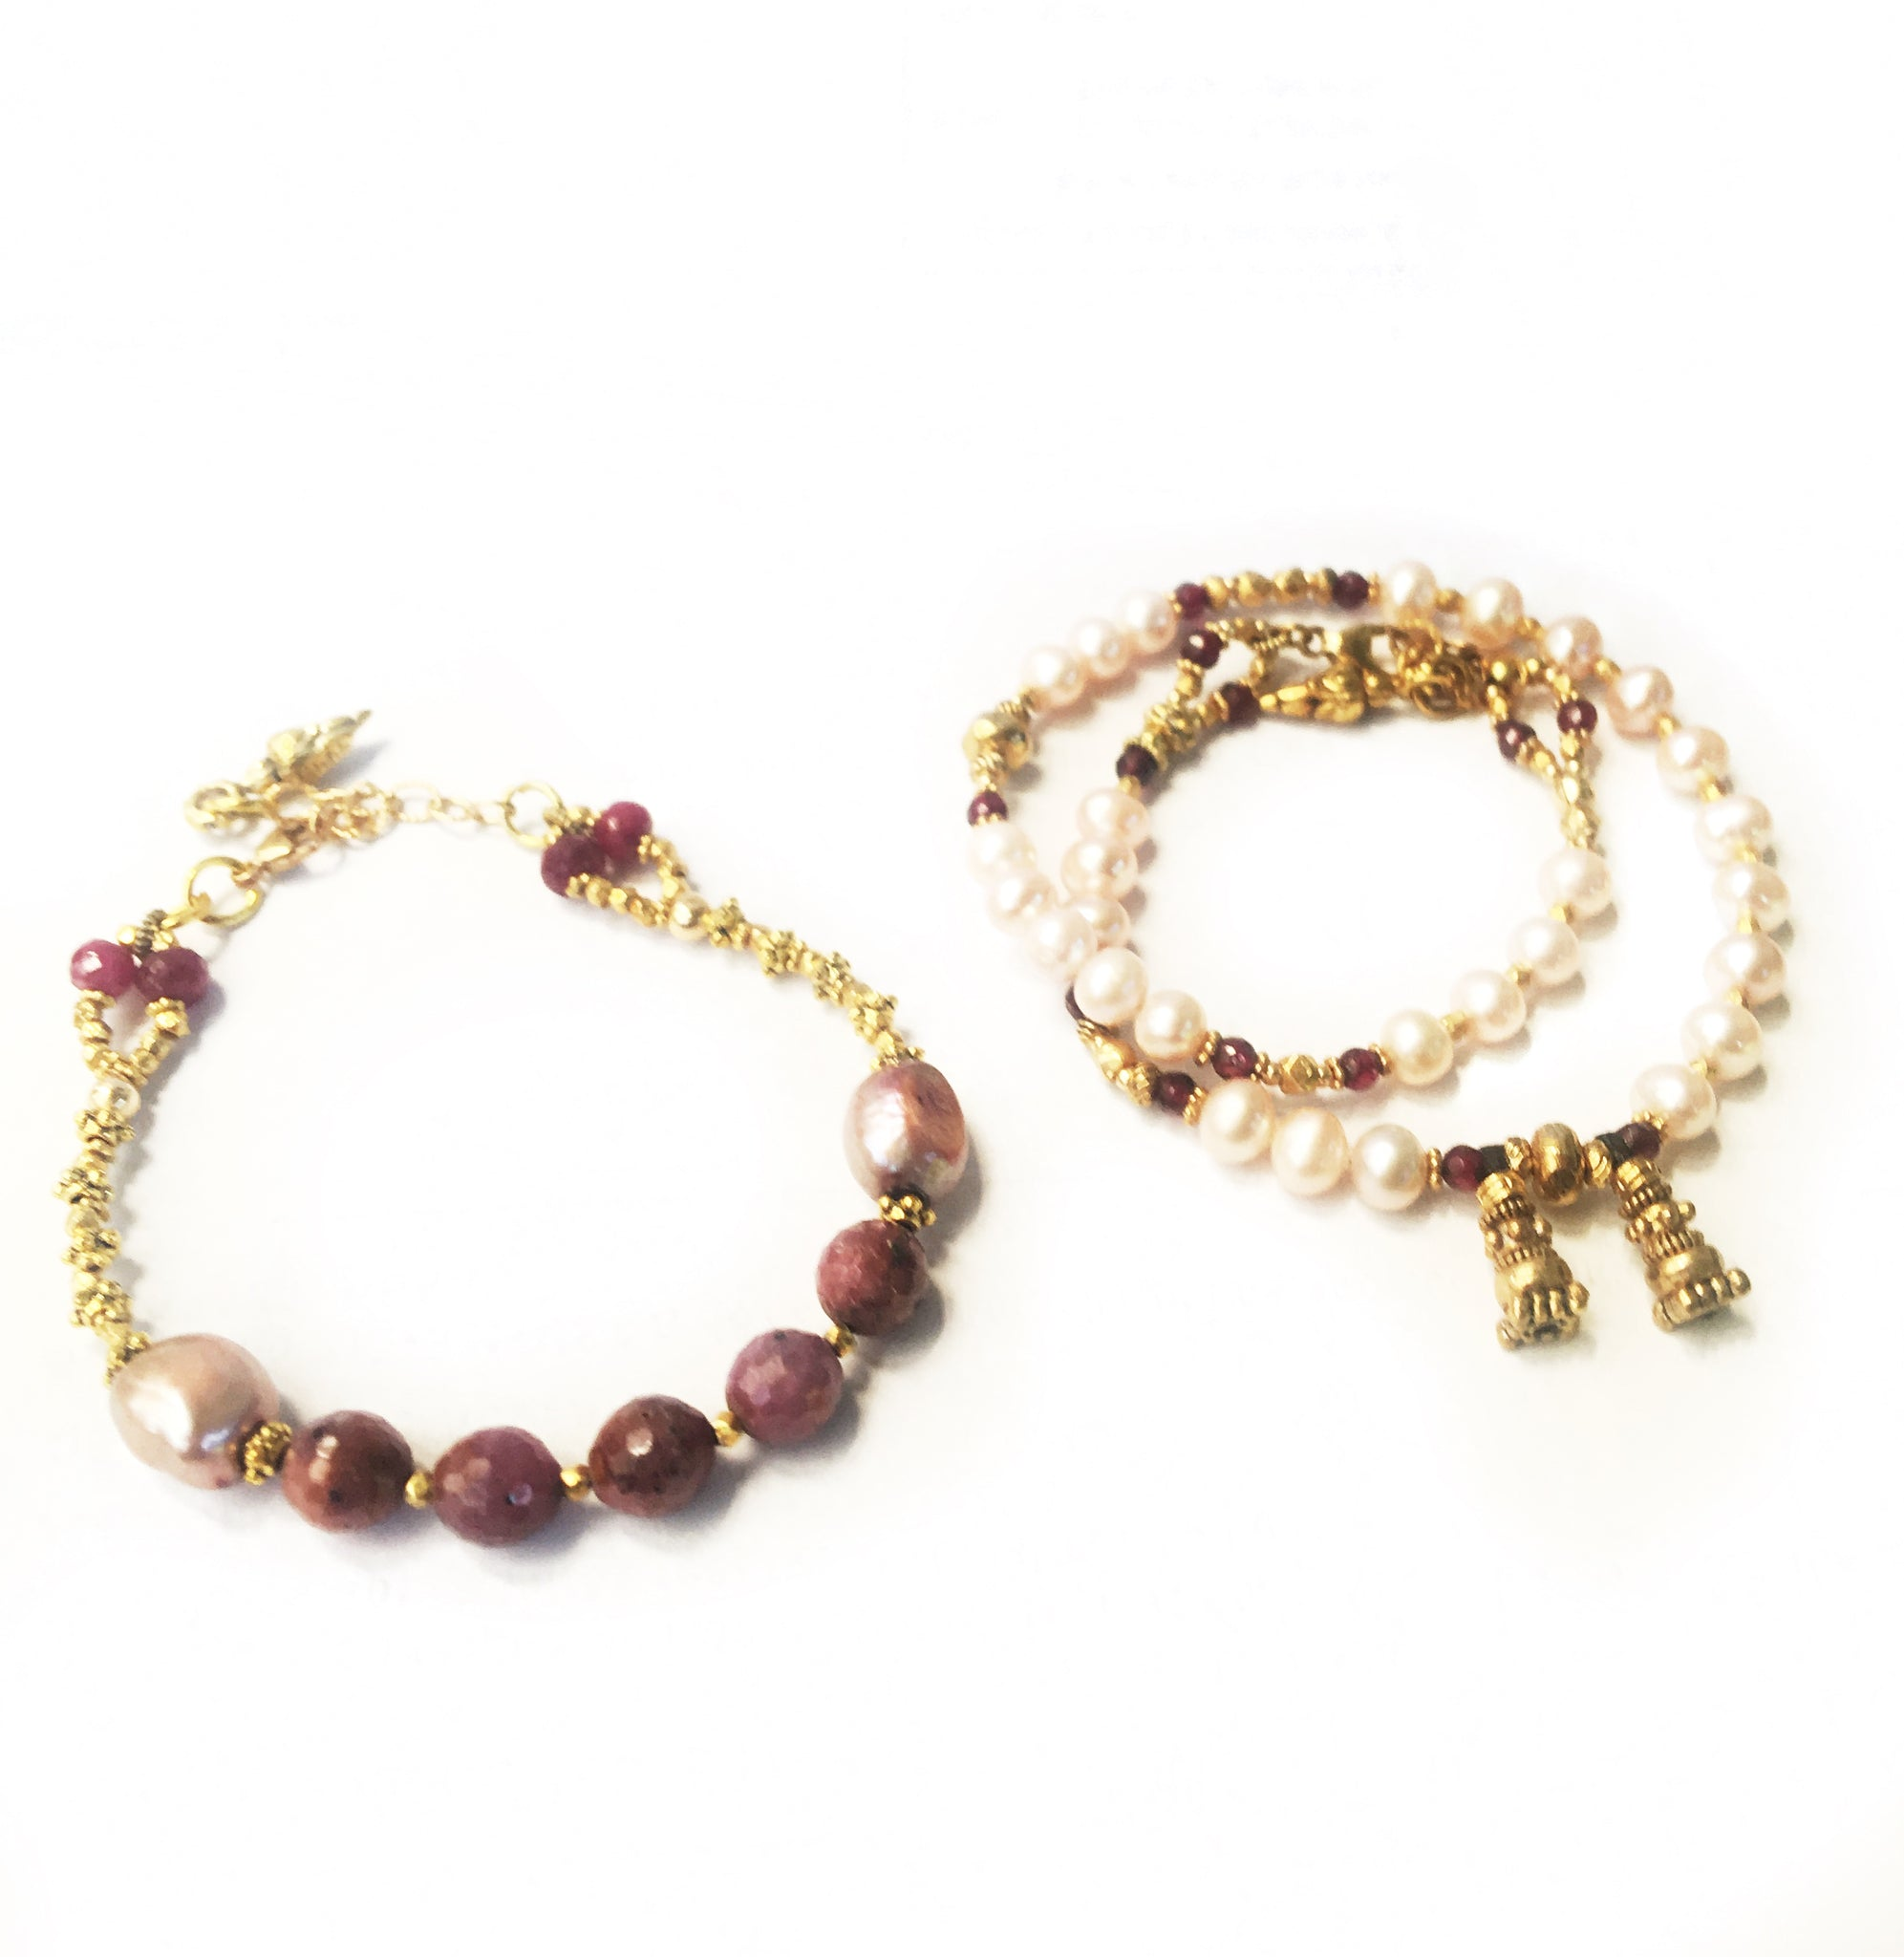 Ruby and Pearl Bracelet Duo